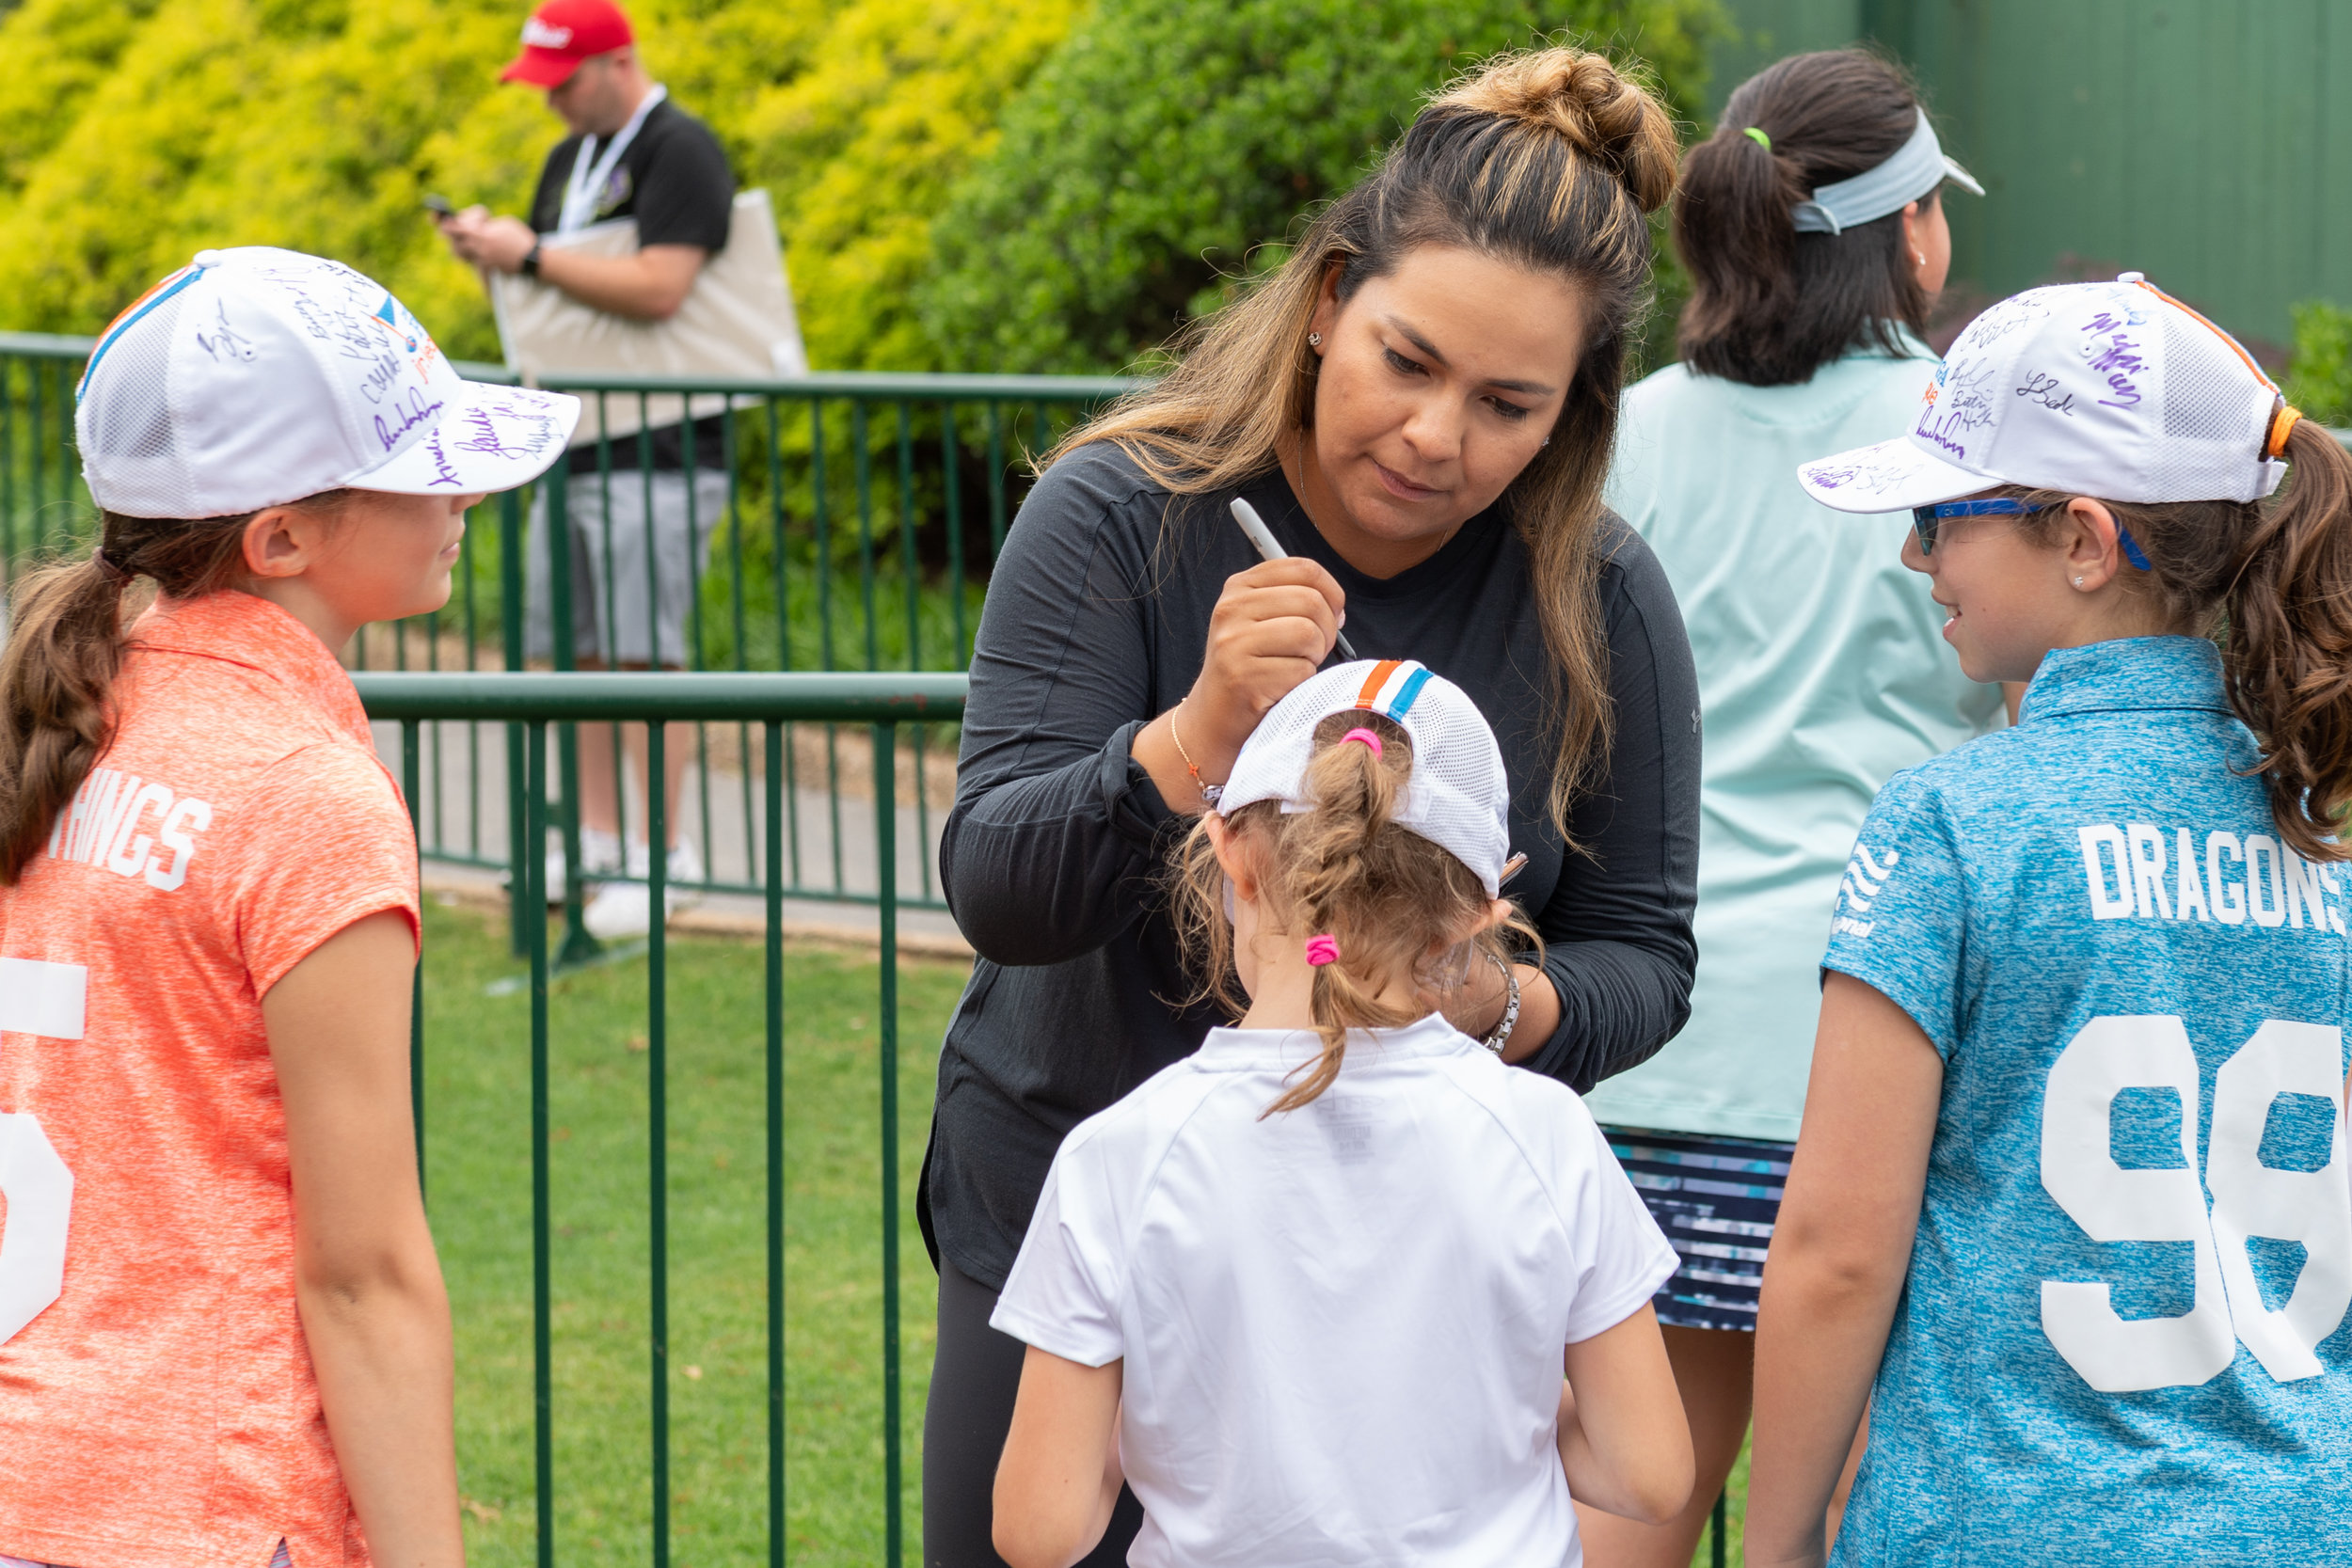 Lizette Salas signs autographs after practice on Saturday, May 19, 2018 game at Kingsmill Resort . Play was suspended Friday night due to weather conditions and is expected to continue Sunday, May 20, 2018.